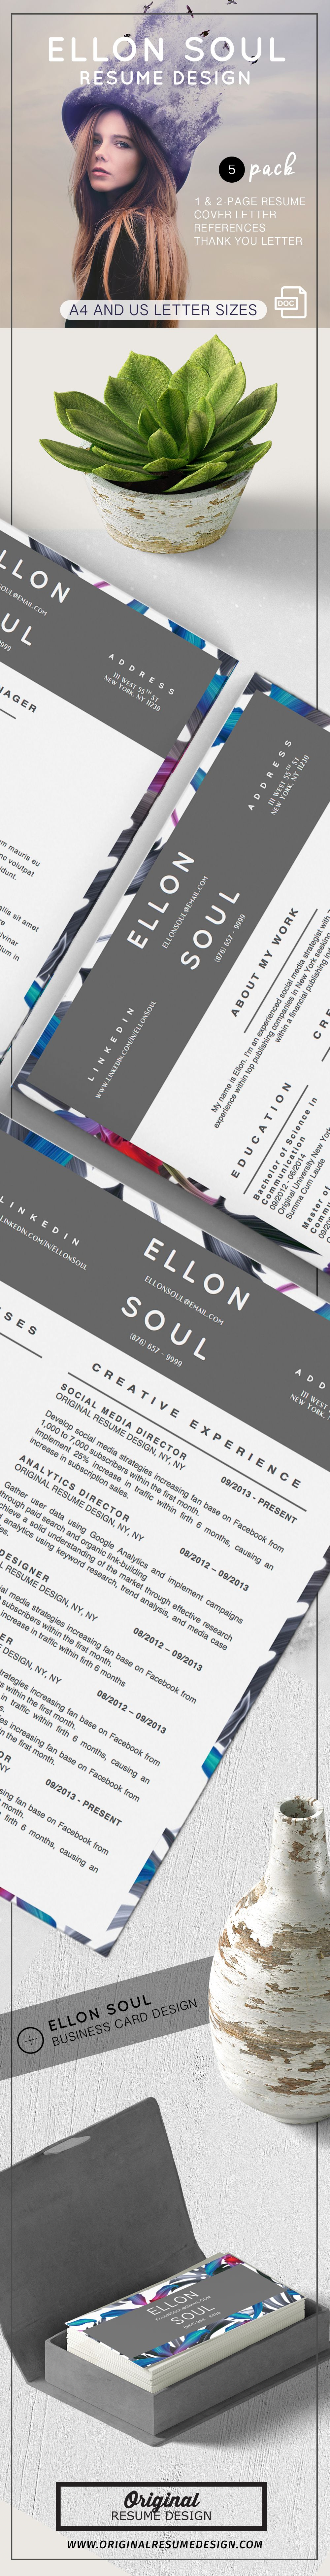 Resume Trigger Words Beautiful And Modern Resume Designellon Soul Features 5 Templates .